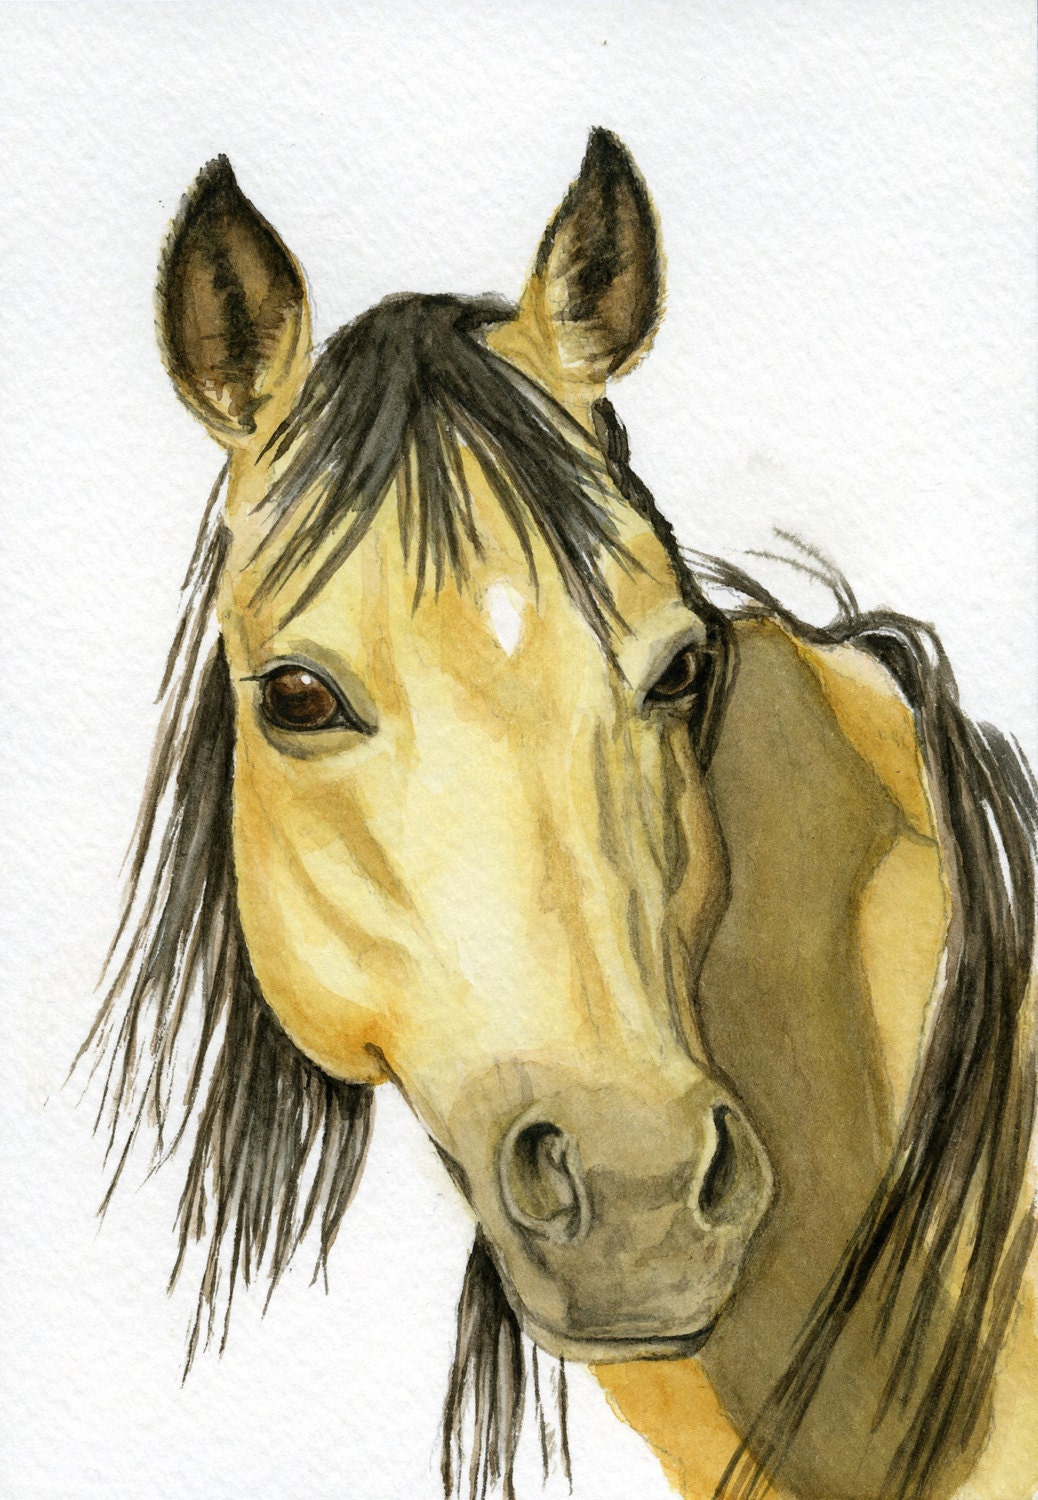 Mustang horse painting - photo#37